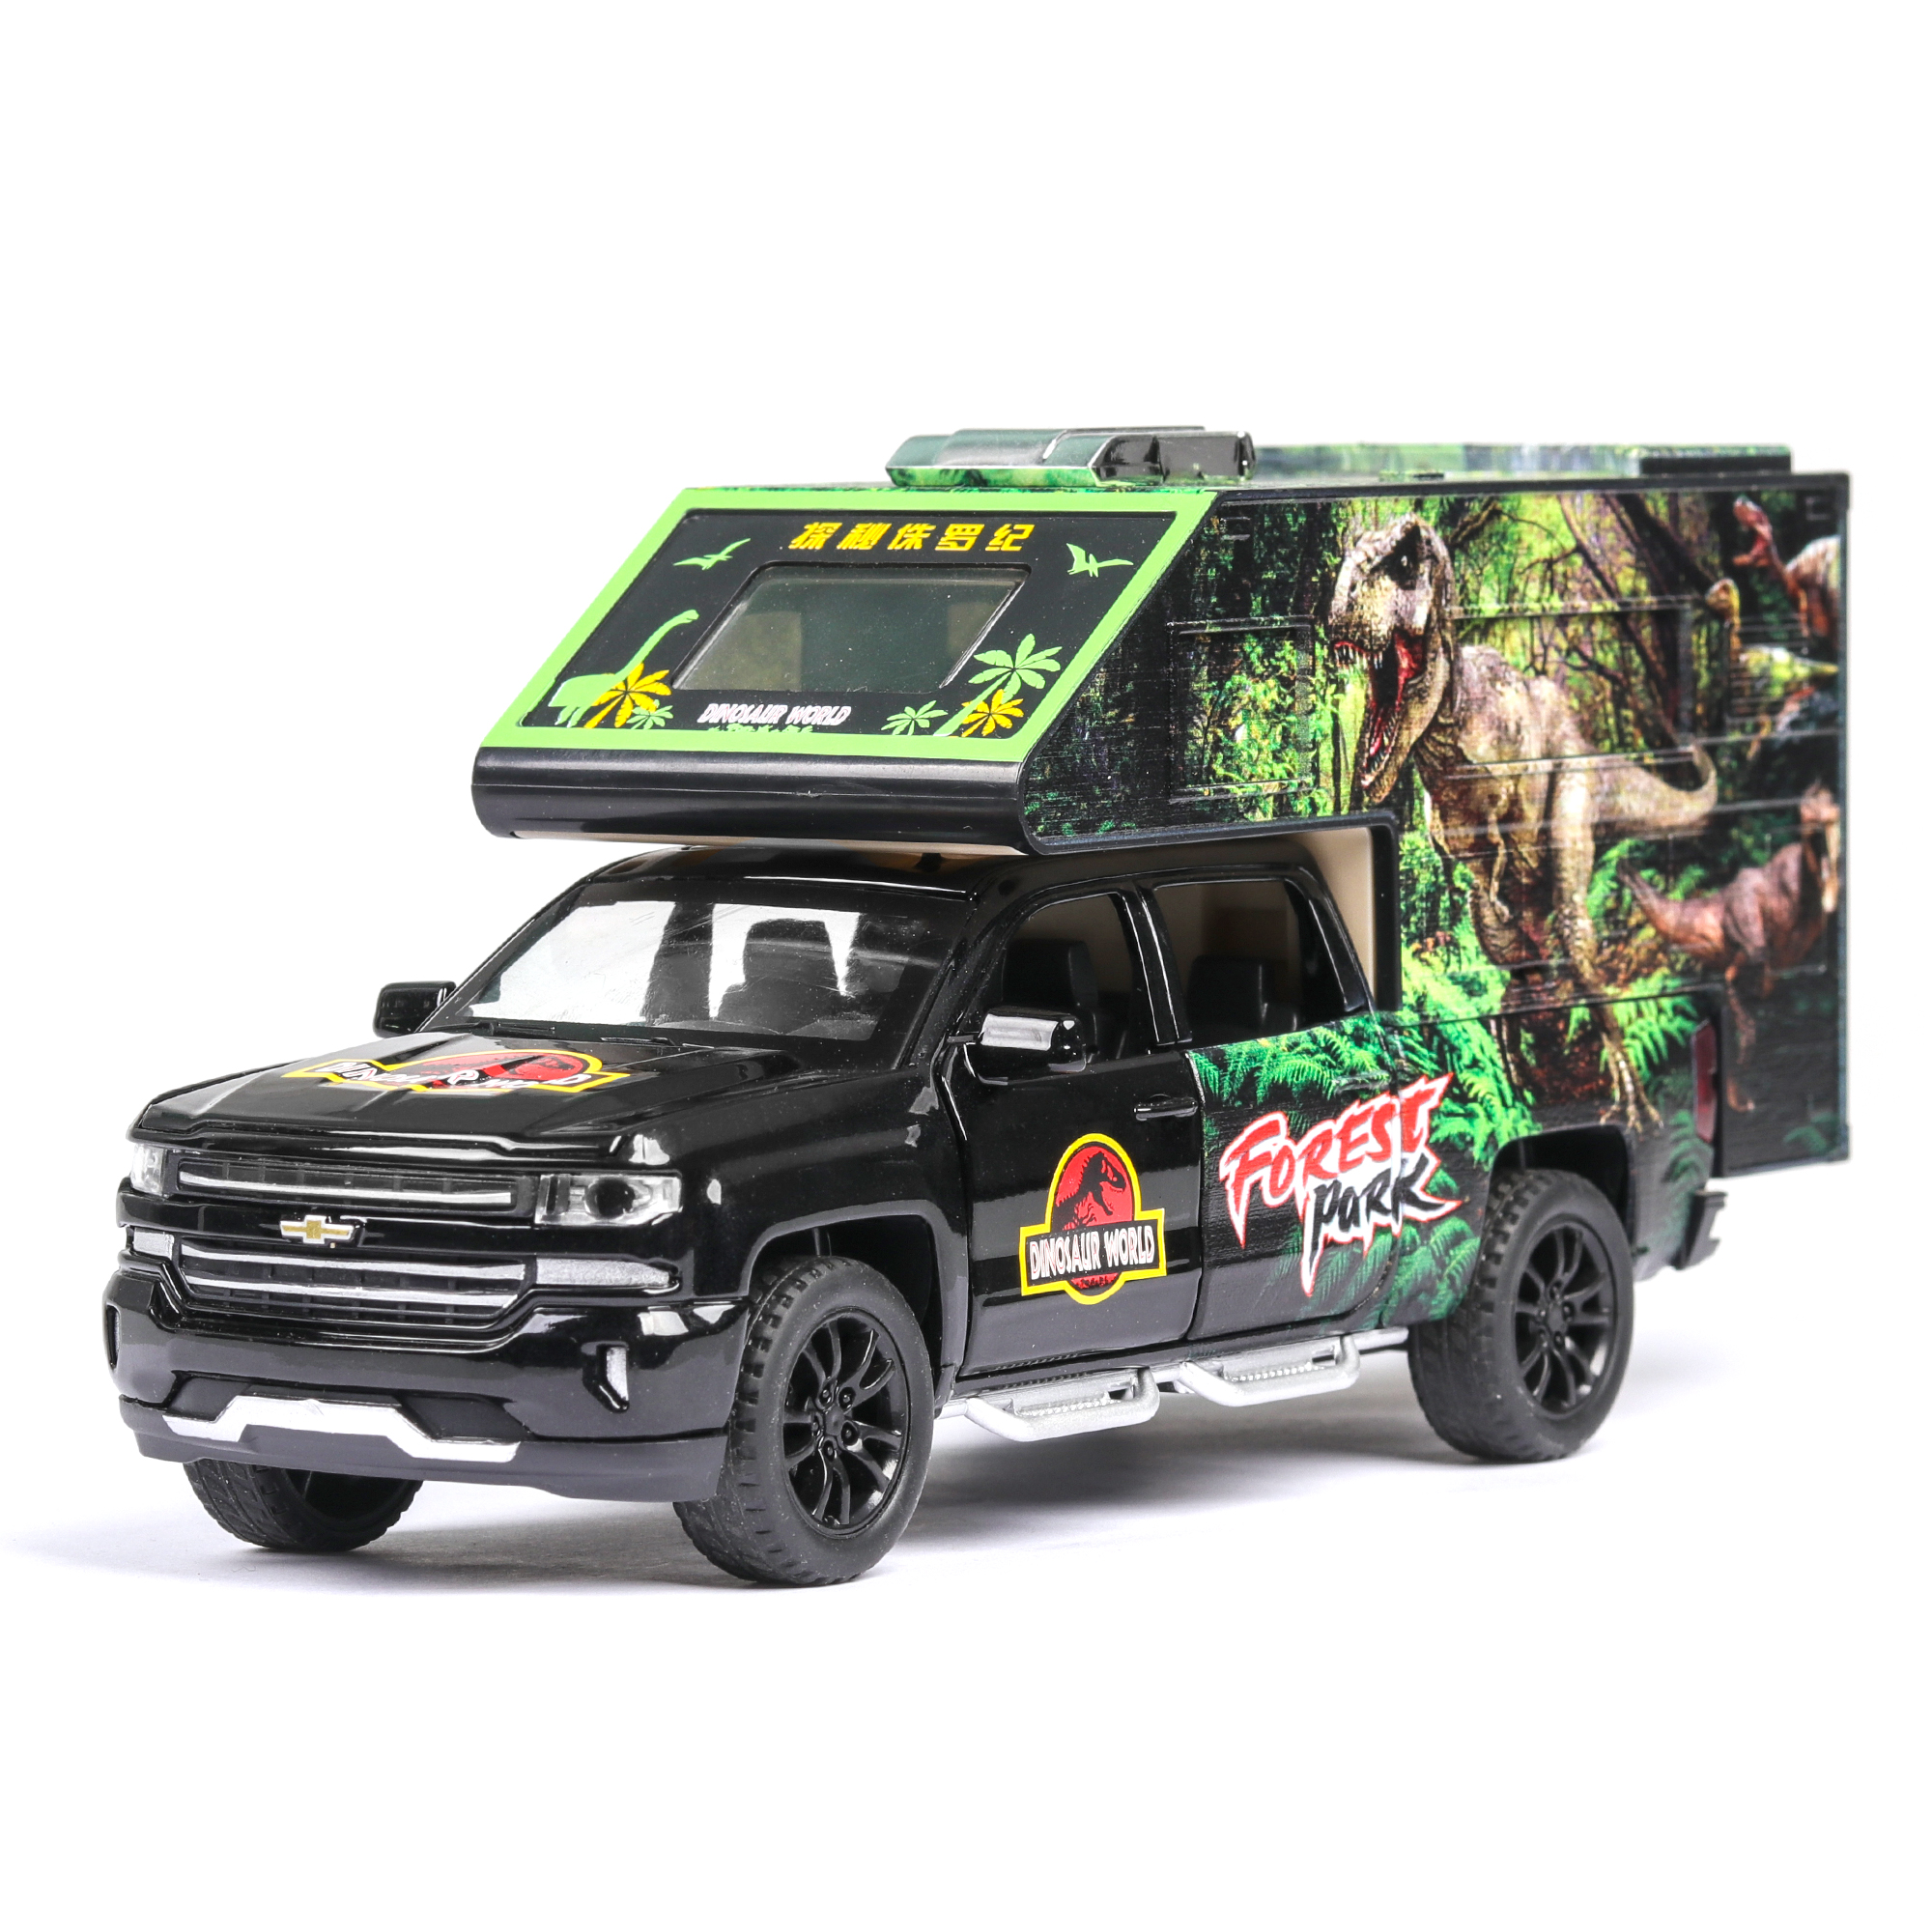 1:32 NEW High Jurassic Car Model Sound And Light Pull Back Alloy Toy Car For Children Christmas Gifts Metal Model Send Dinosaurs